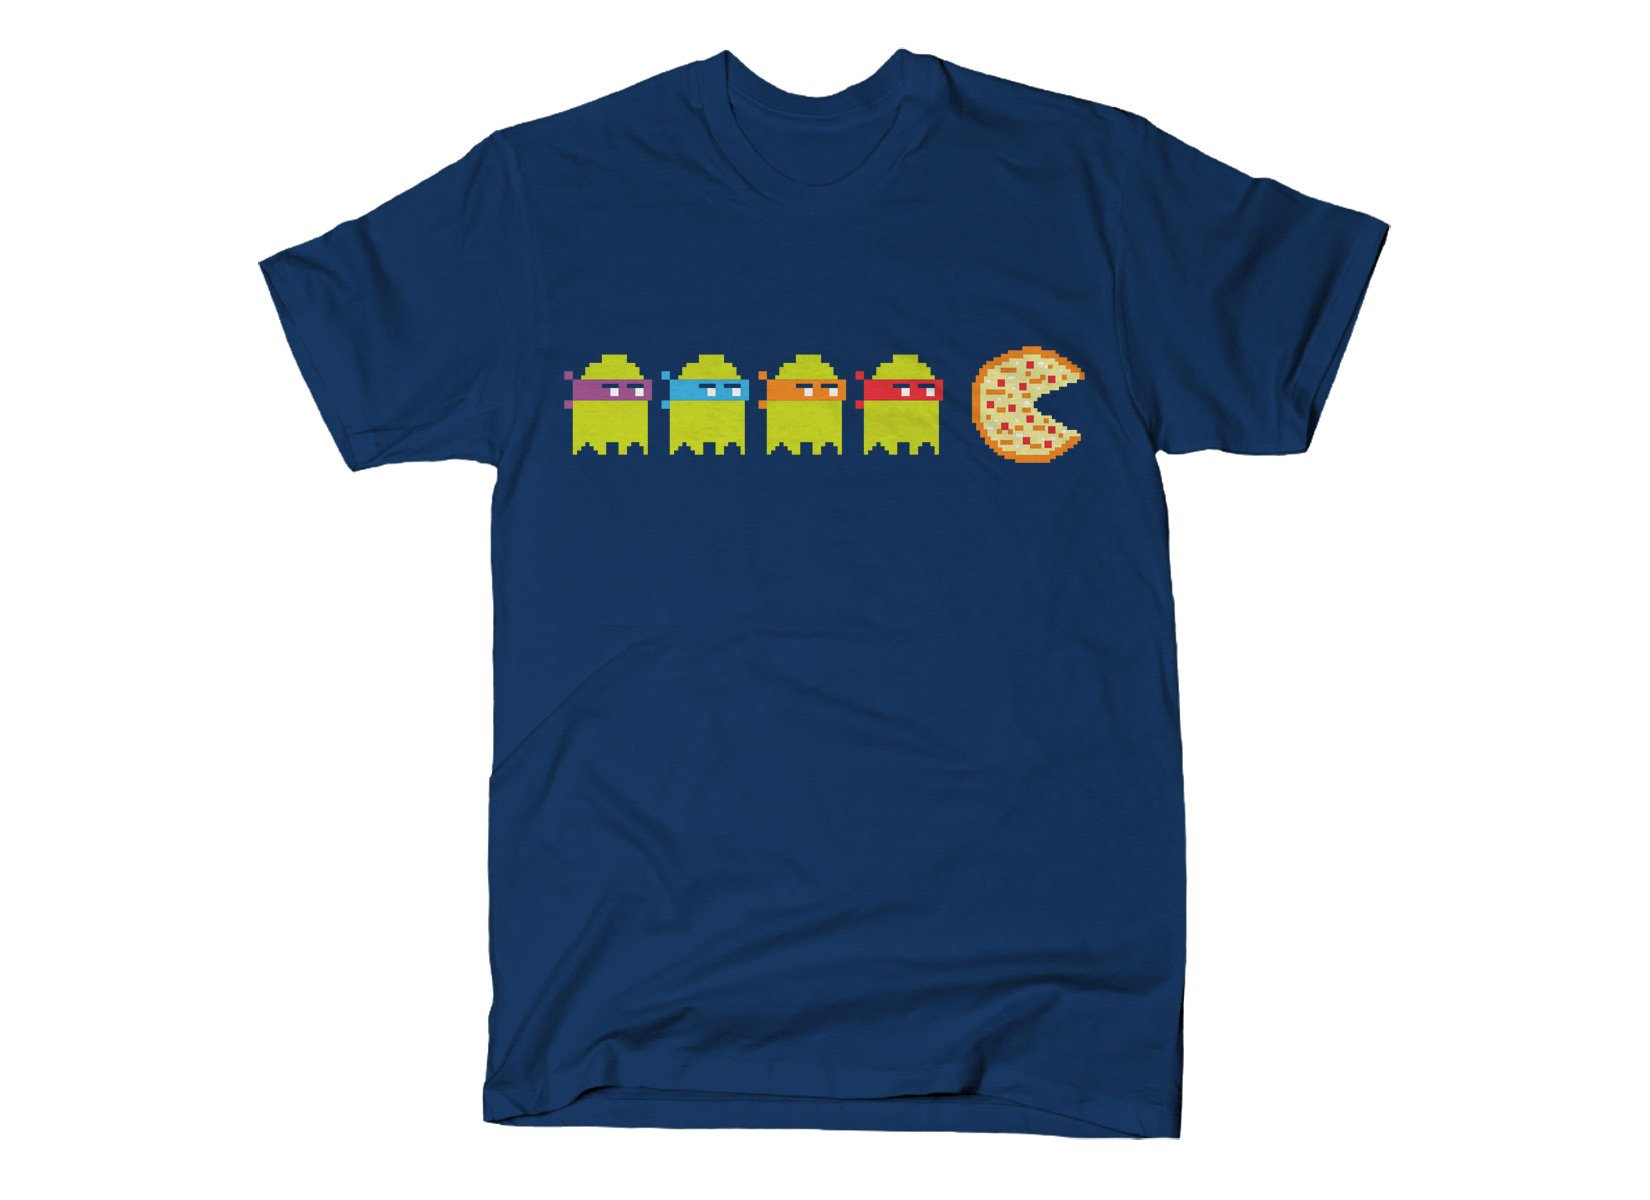 Teenage Mutant Ninja Ghosts on Mens T-Shirt